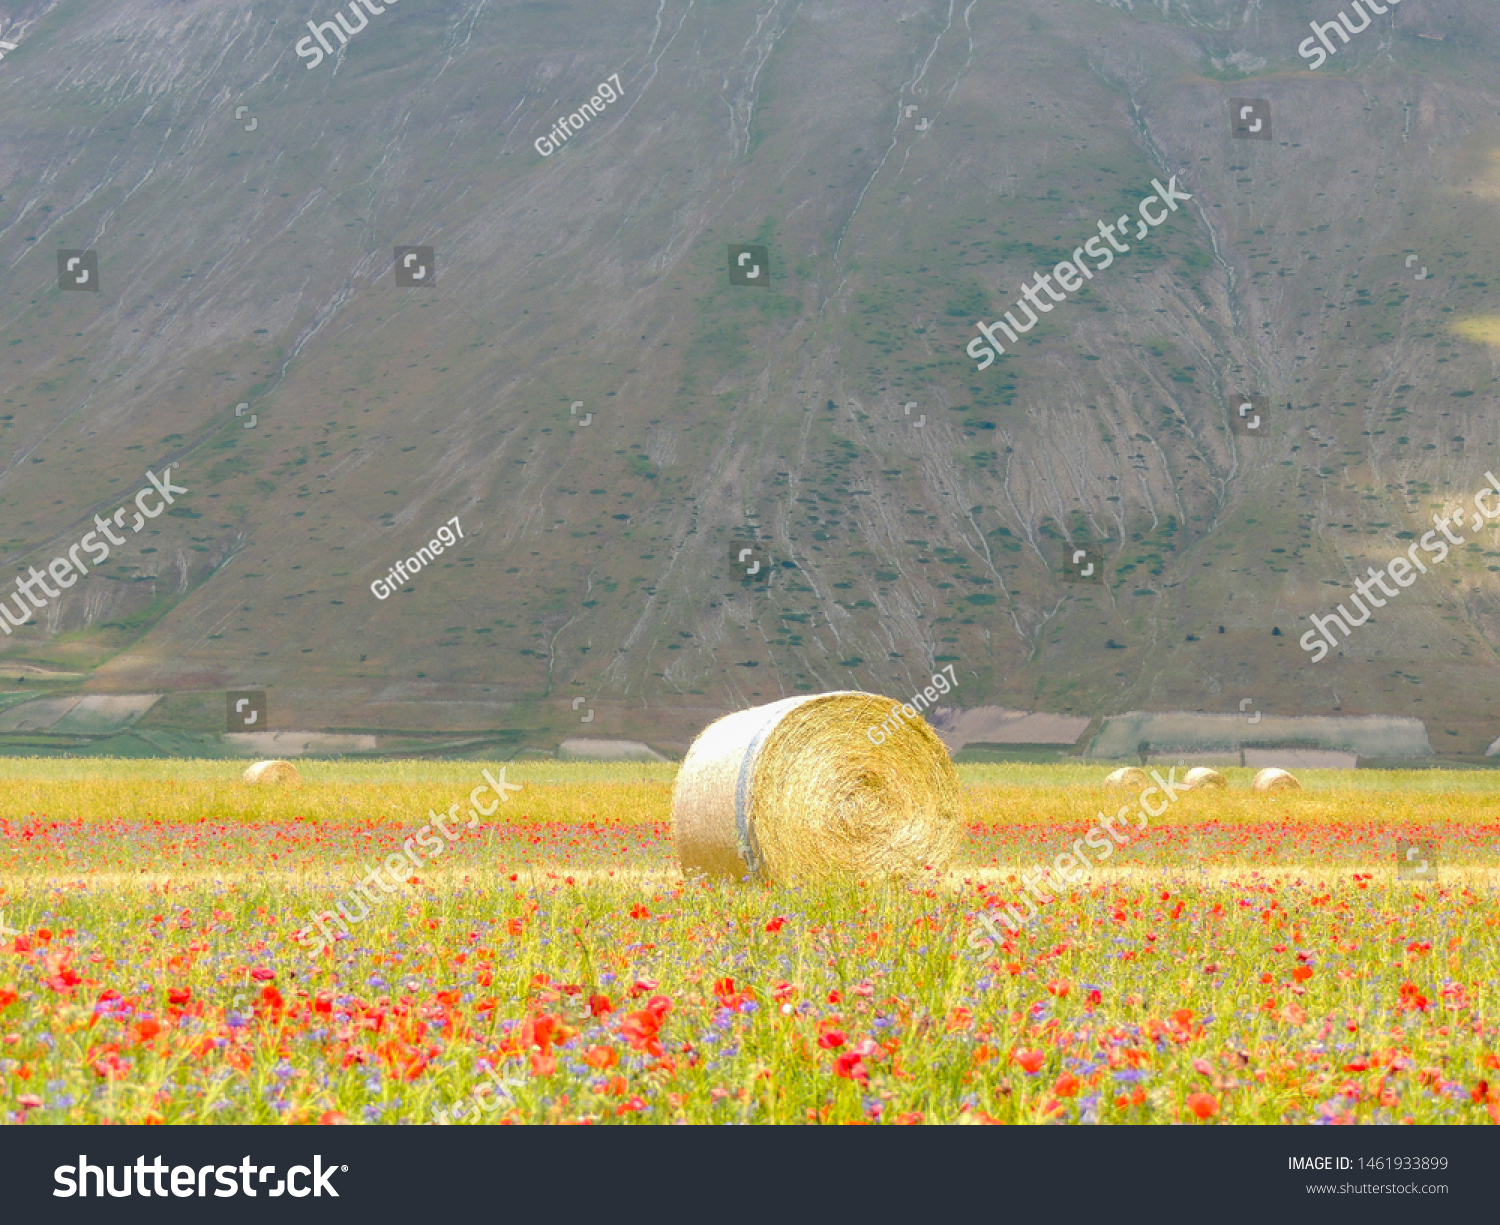 Typical summer view of the floweing fields of Castelluccio di Norcia with a bale in the center.